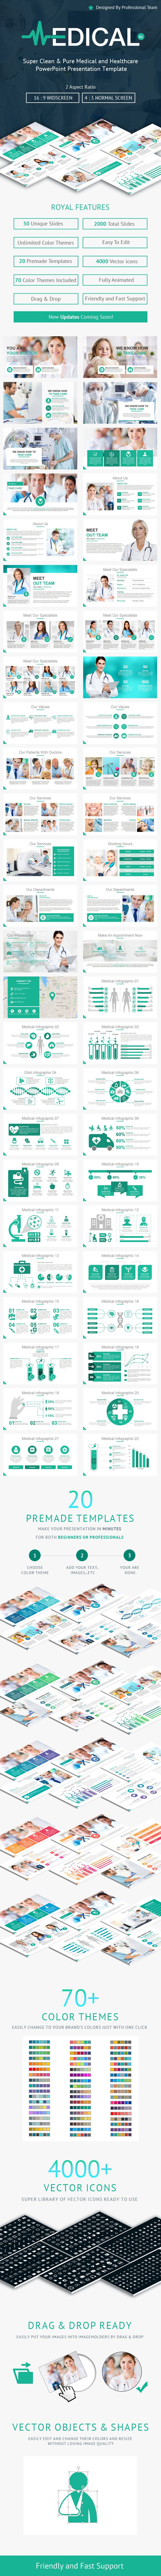 Poster design templates powerpoint - Medical And Healthcare Powerpoint Presentation Template